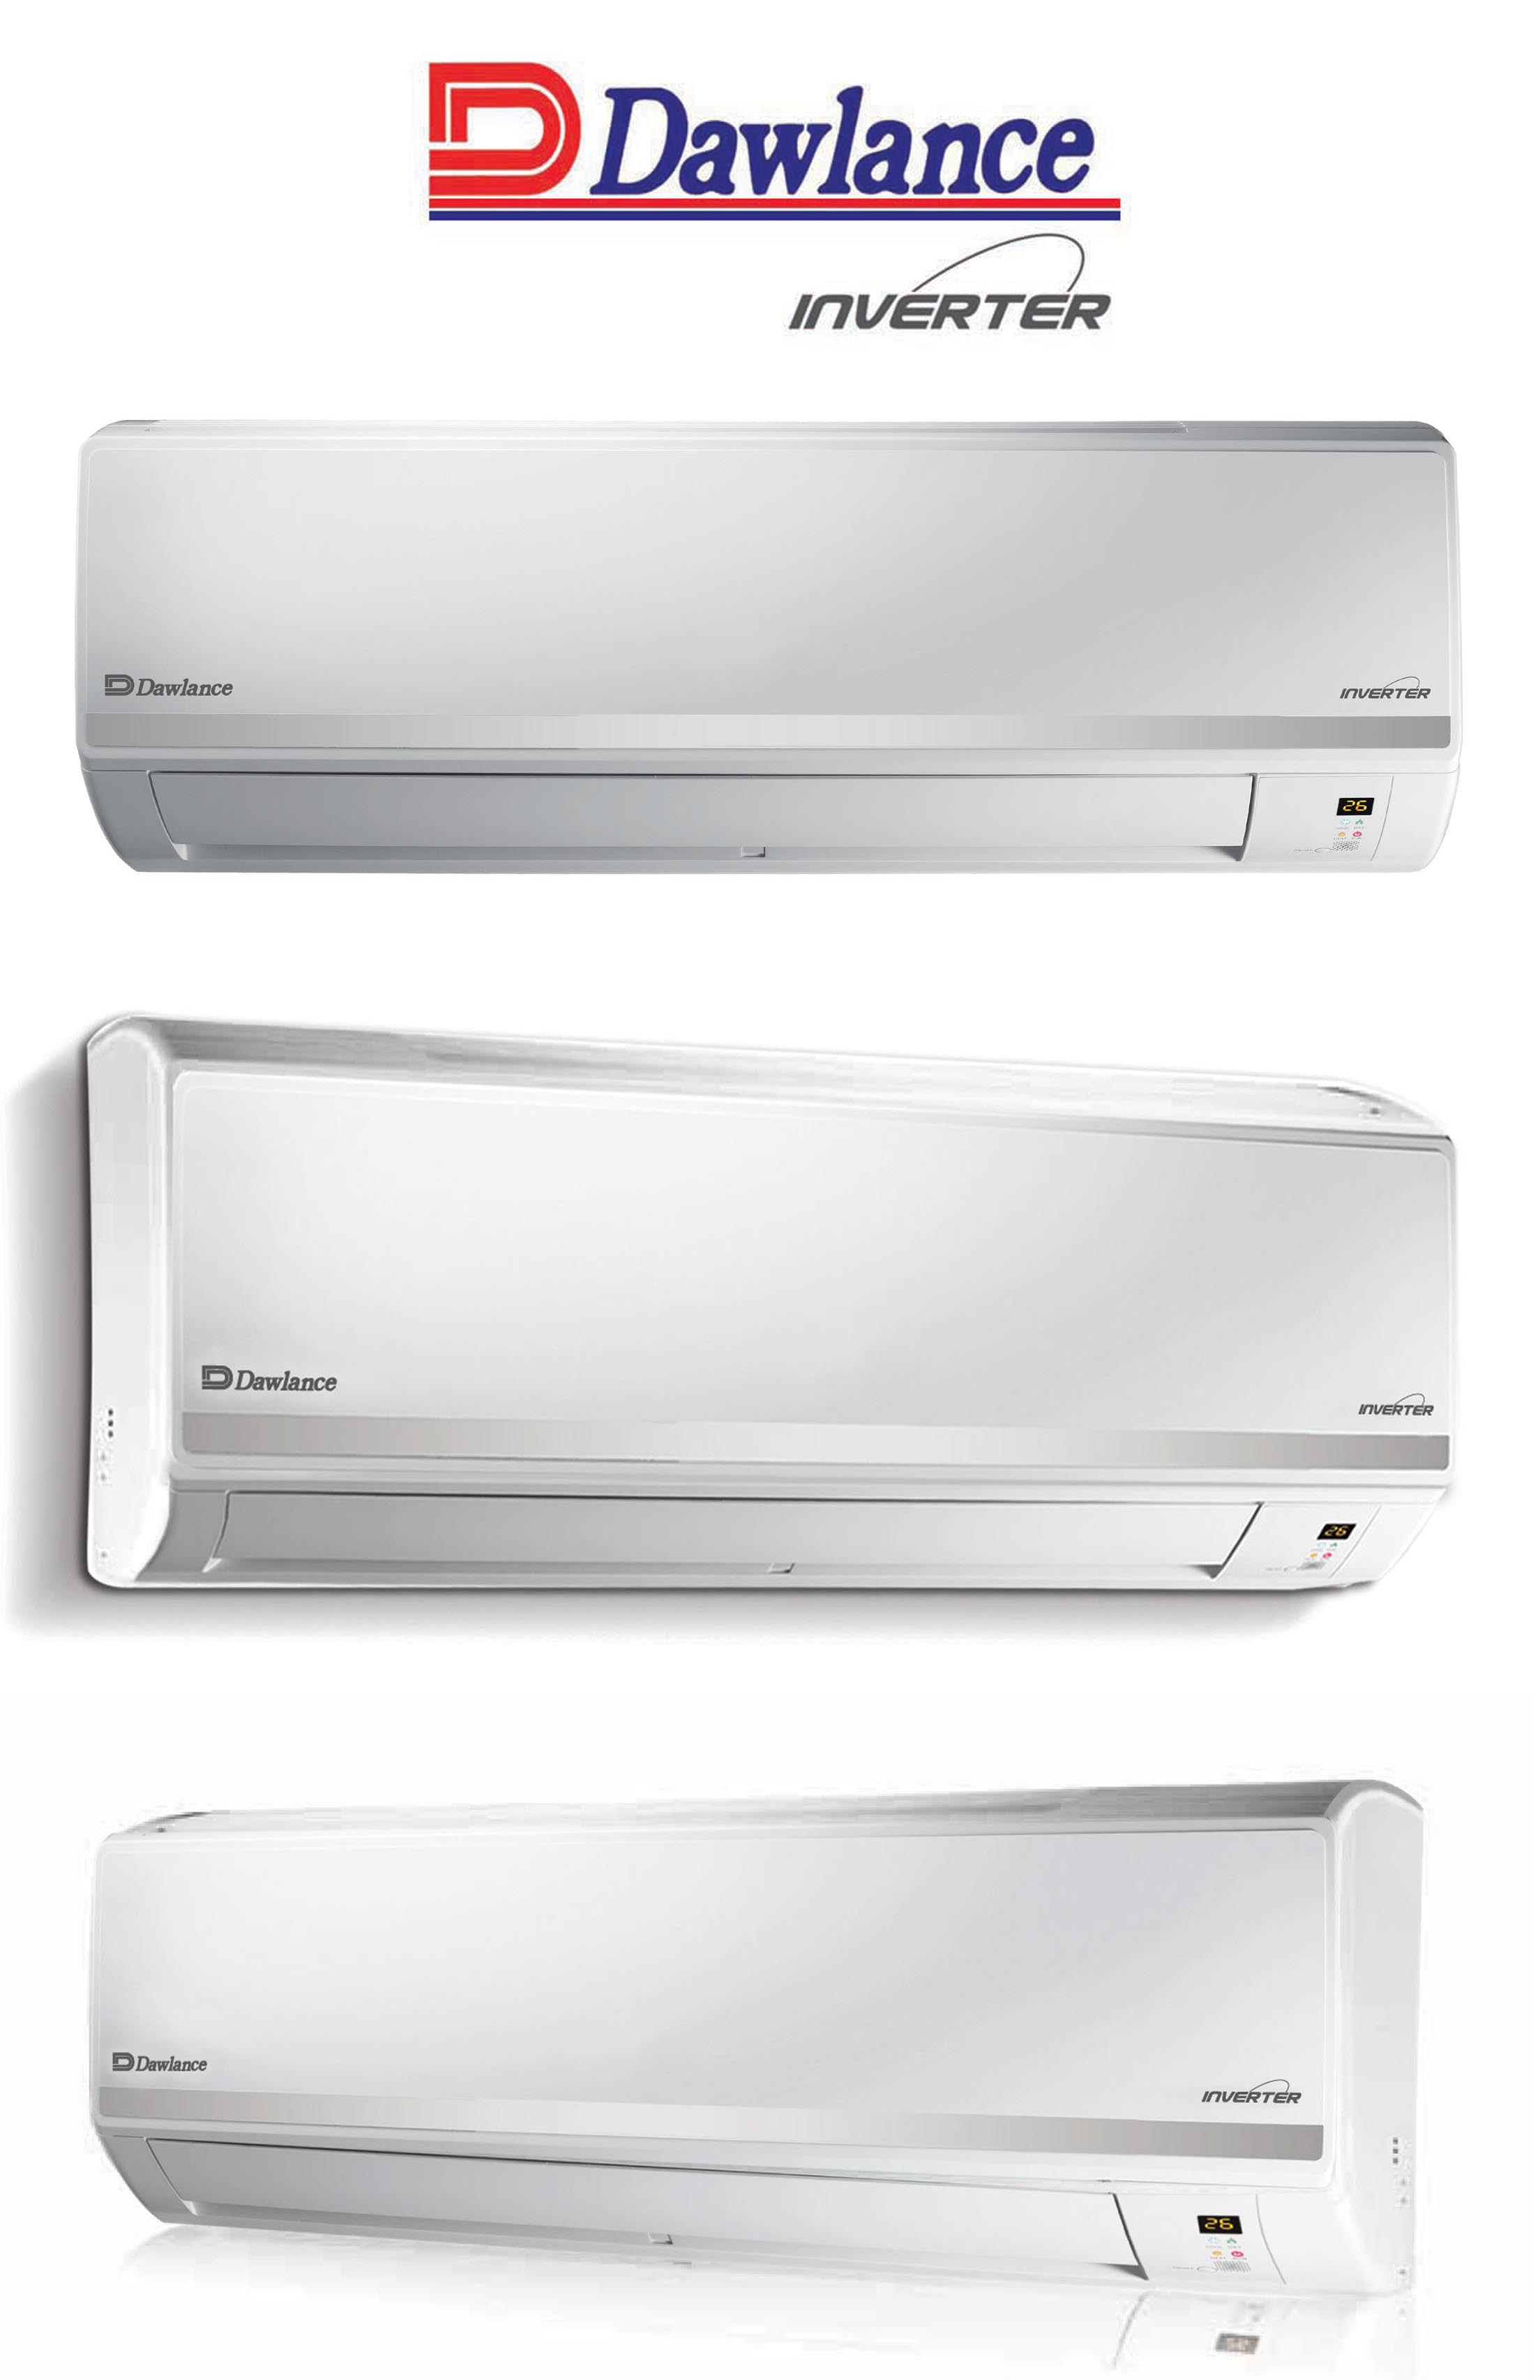 Dawlance Air Conditioner Prices In Pakistan 2019